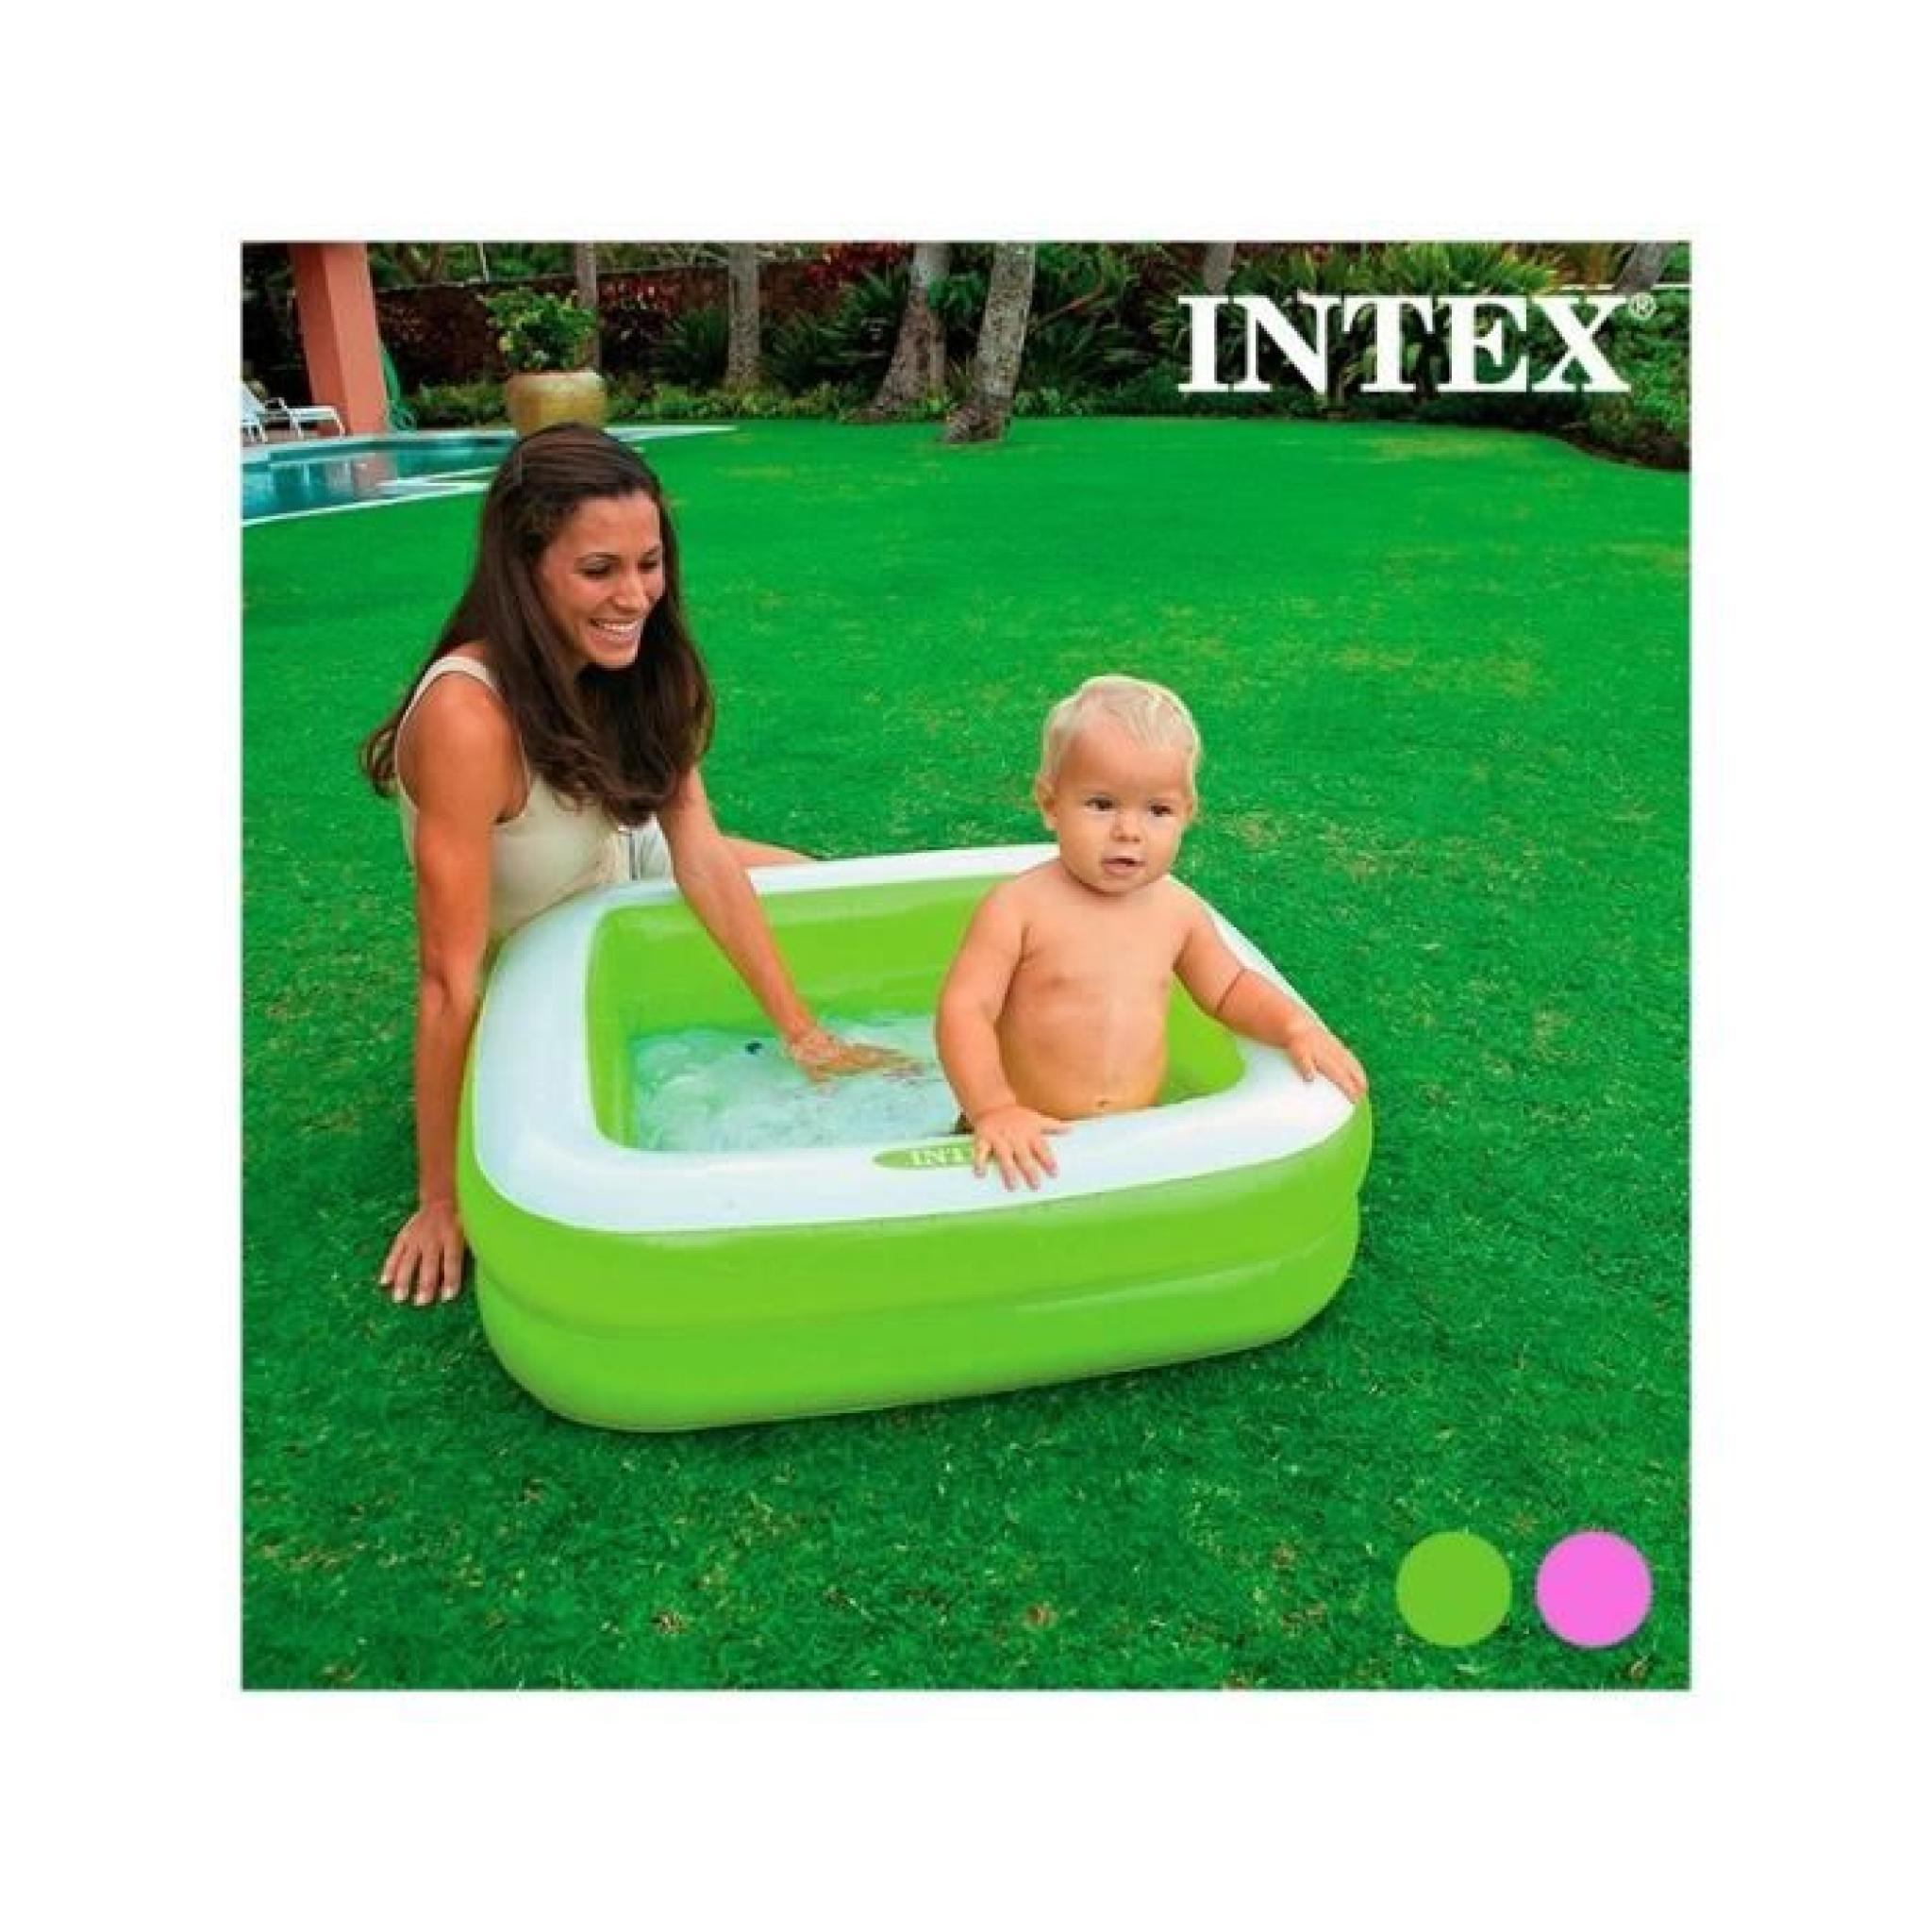 Piscine gonflable carr e pour enfants intex rose for Piscine gonflable pas cher